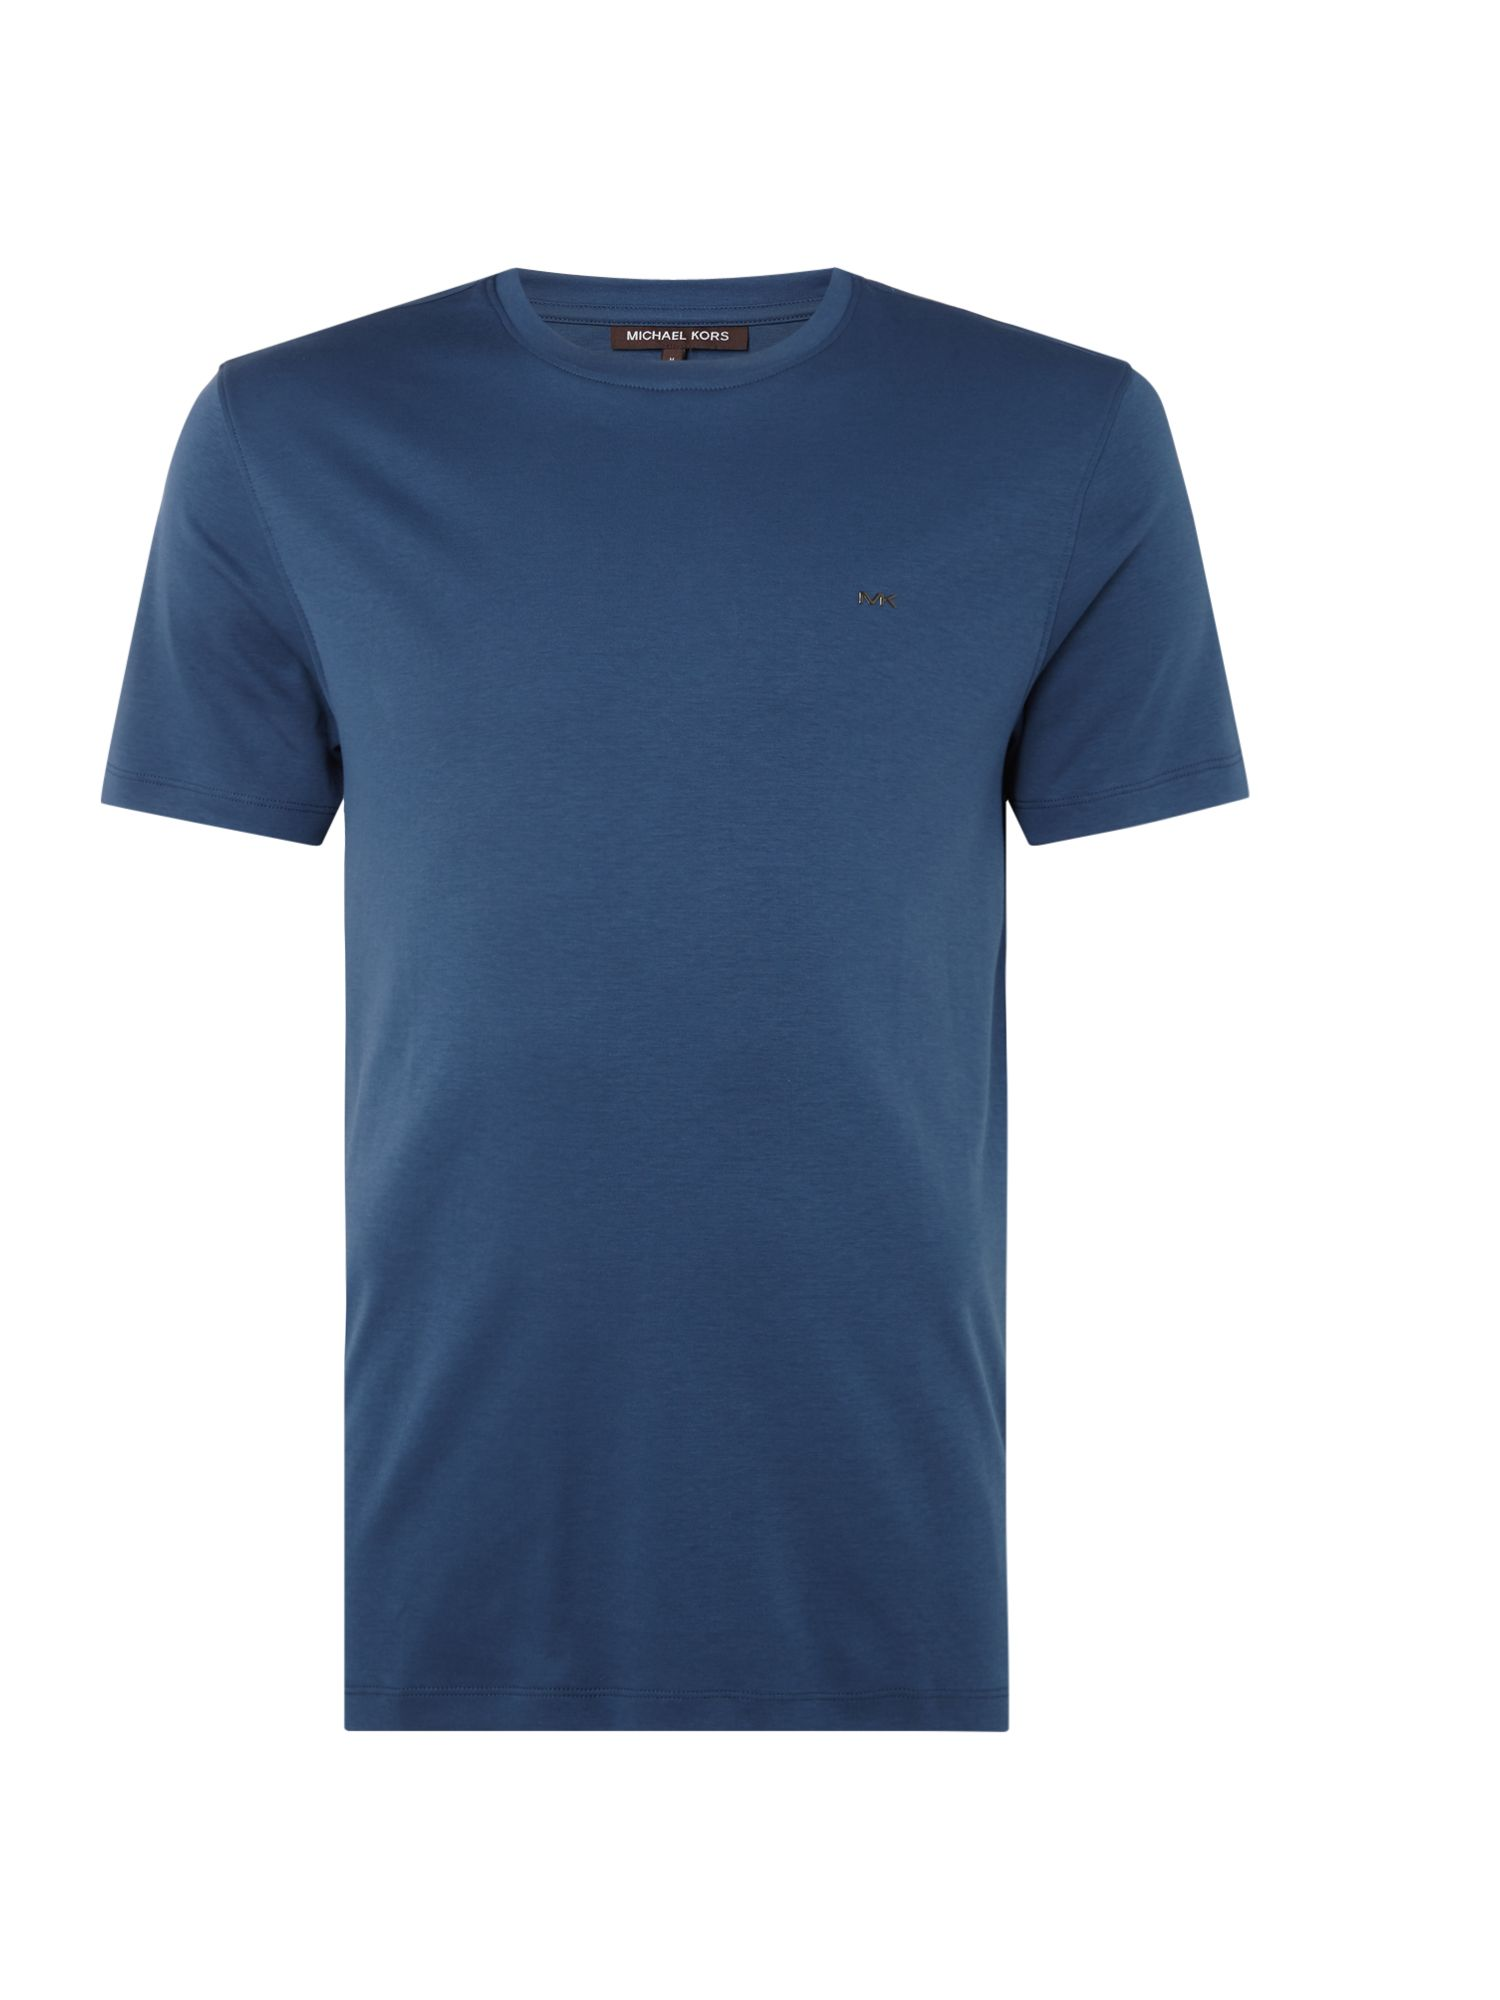 Men's Michael Kors Sleek Crew Neck T-Shirt, Blue